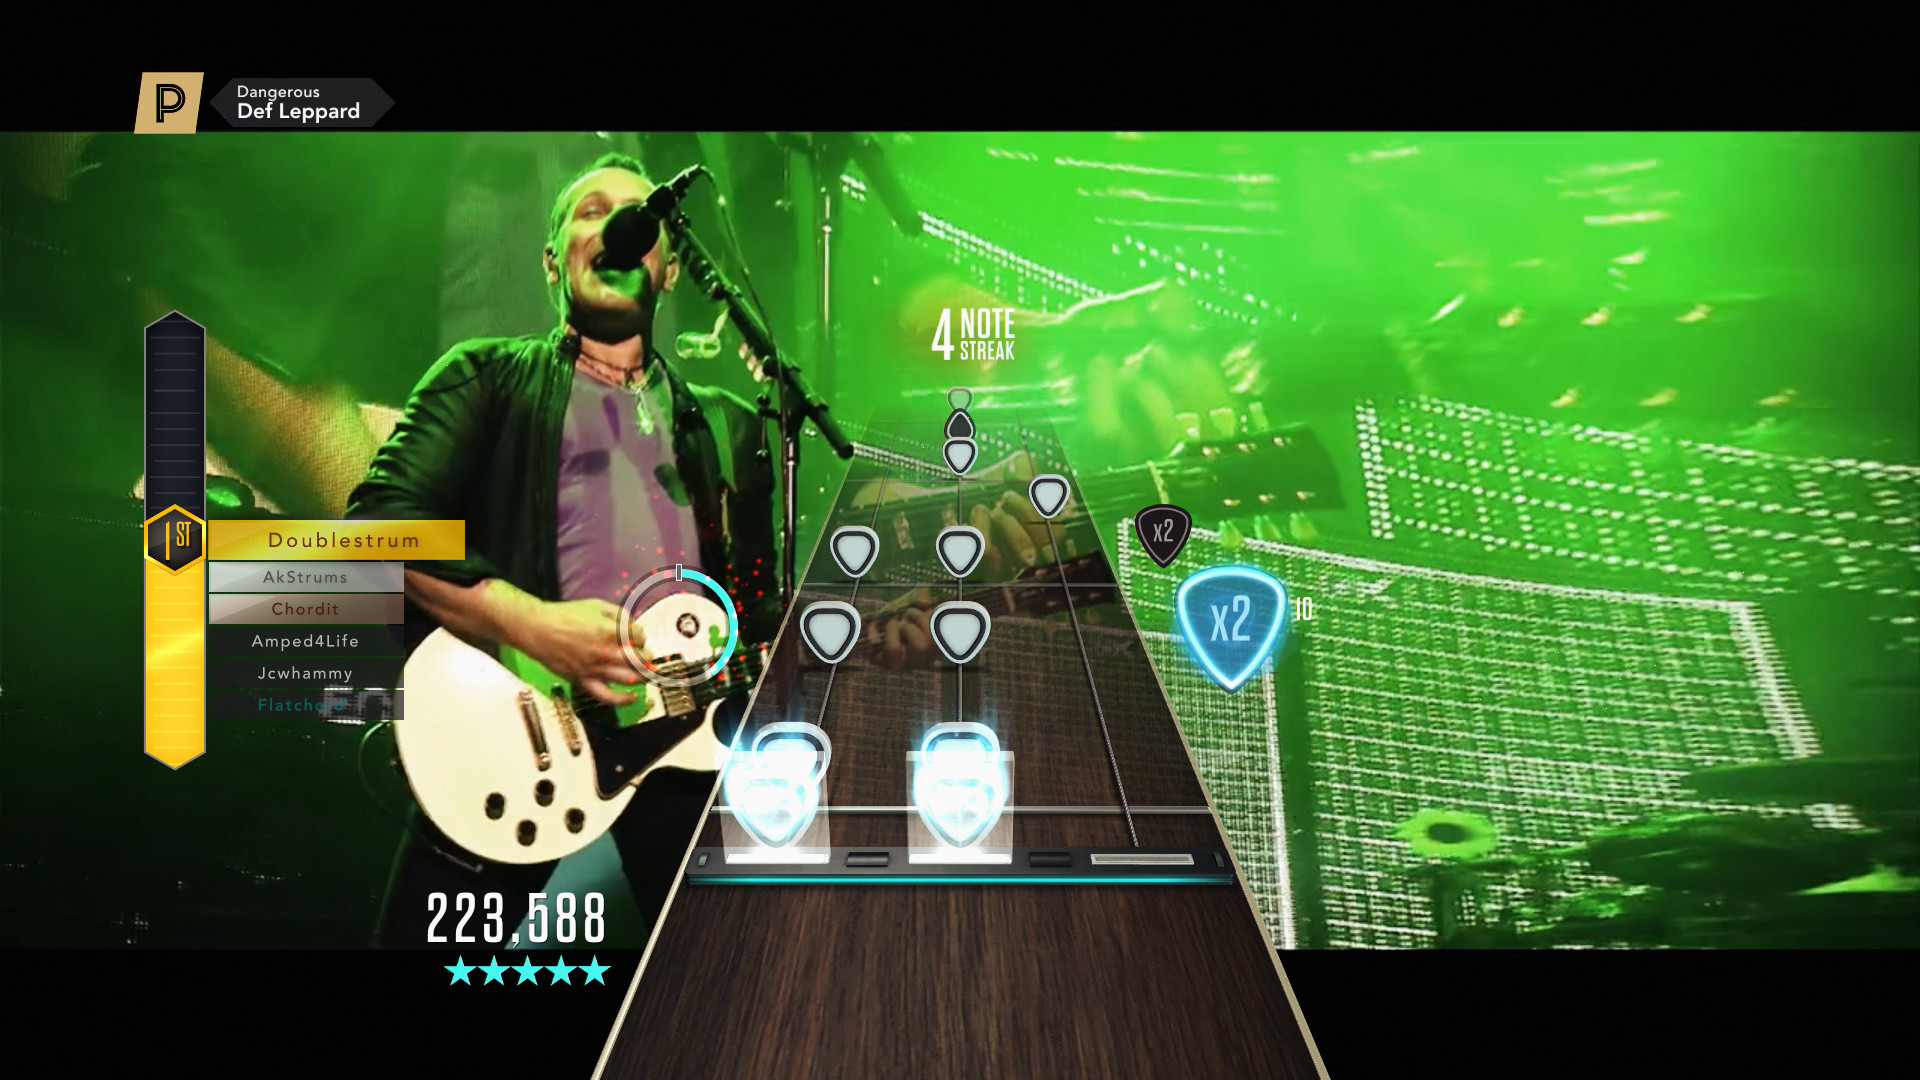 """Res: 1920x1080, Activision announced today that Guitar Hero Live's GHTV will be the first  place in the US and Europe to watch Def Leppard's music video for  """"Dangerous."""